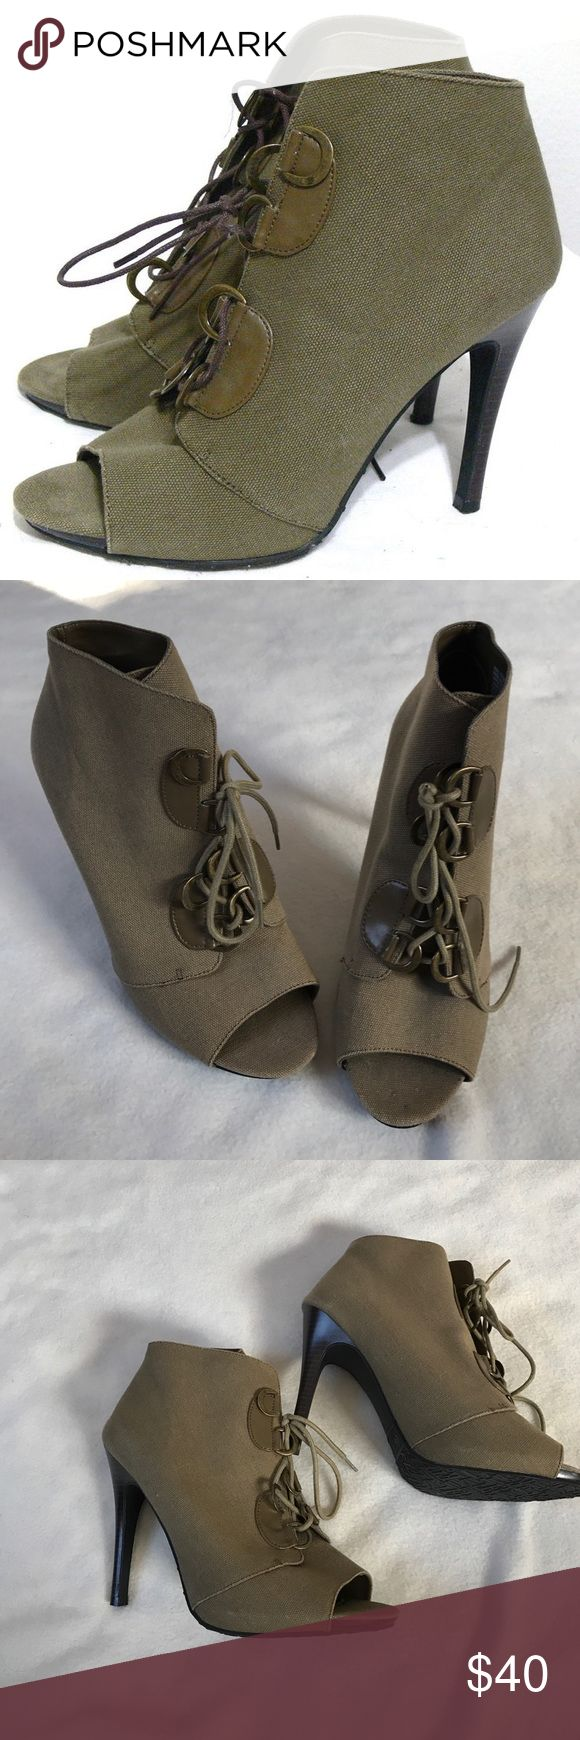 """Elle Vaughn Olive Lace Up Canvas Peep Toe Bootie Olive color. Canvas style. Lace Up ankle. Optic. Peep Toe style. Excellent condition. 4.5"""" Heel. Super cute for all seasons. Bundle 2+ items and get my 20% off bundle discount. Elle Shoes Ankle Boots & Booties"""